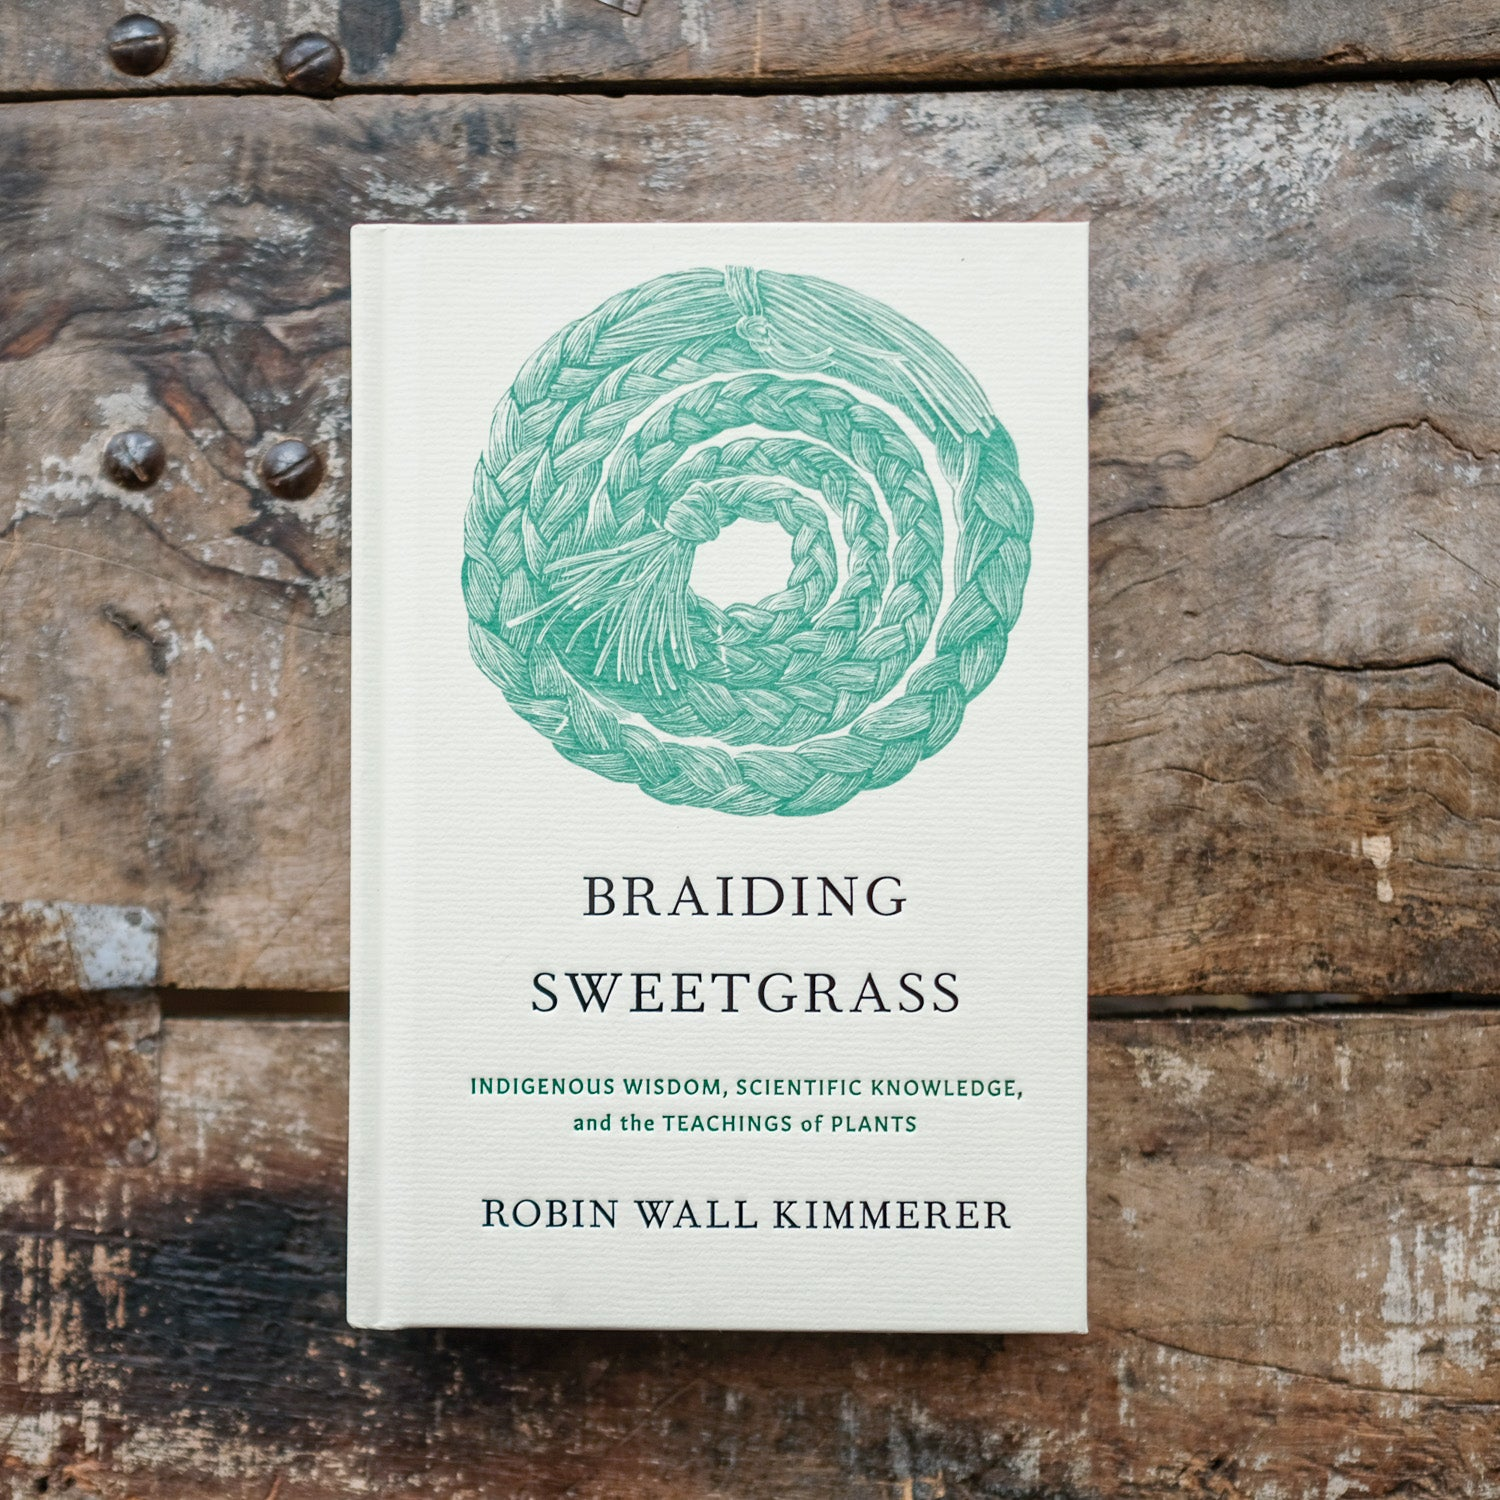 Braiding Sweetgrass: Indigenous Wisdom, Scientific Knowledge and the Teachings of Plants by Robin Wall Kimmerer - Special Edition